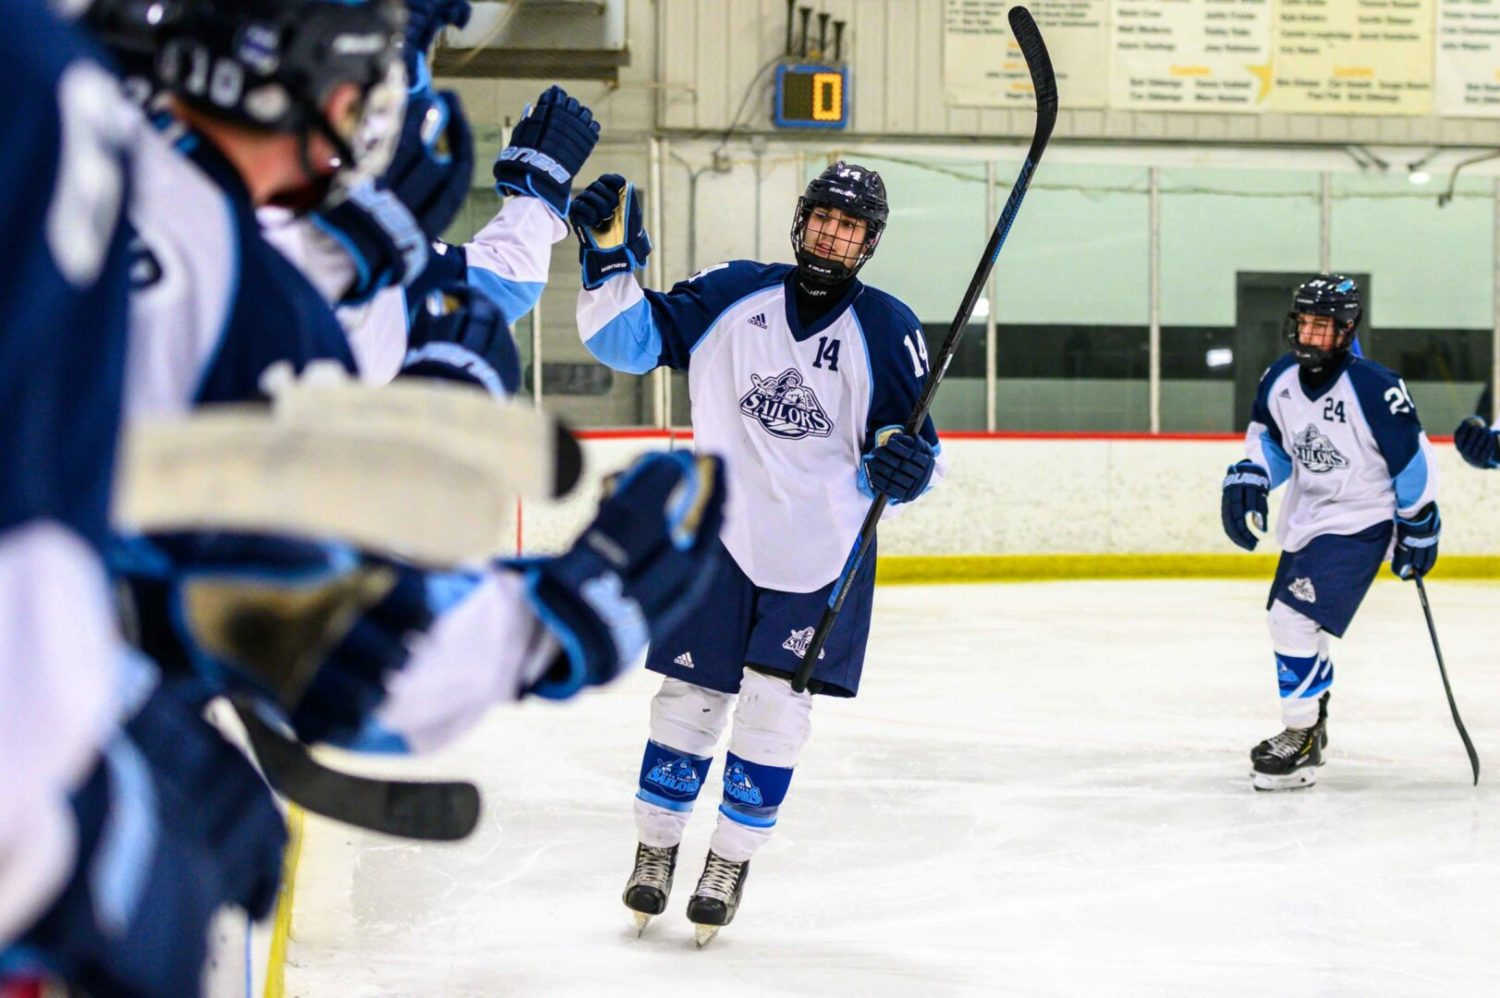 Justin Winegar goal lifts Mona Shores to OT win over Midland